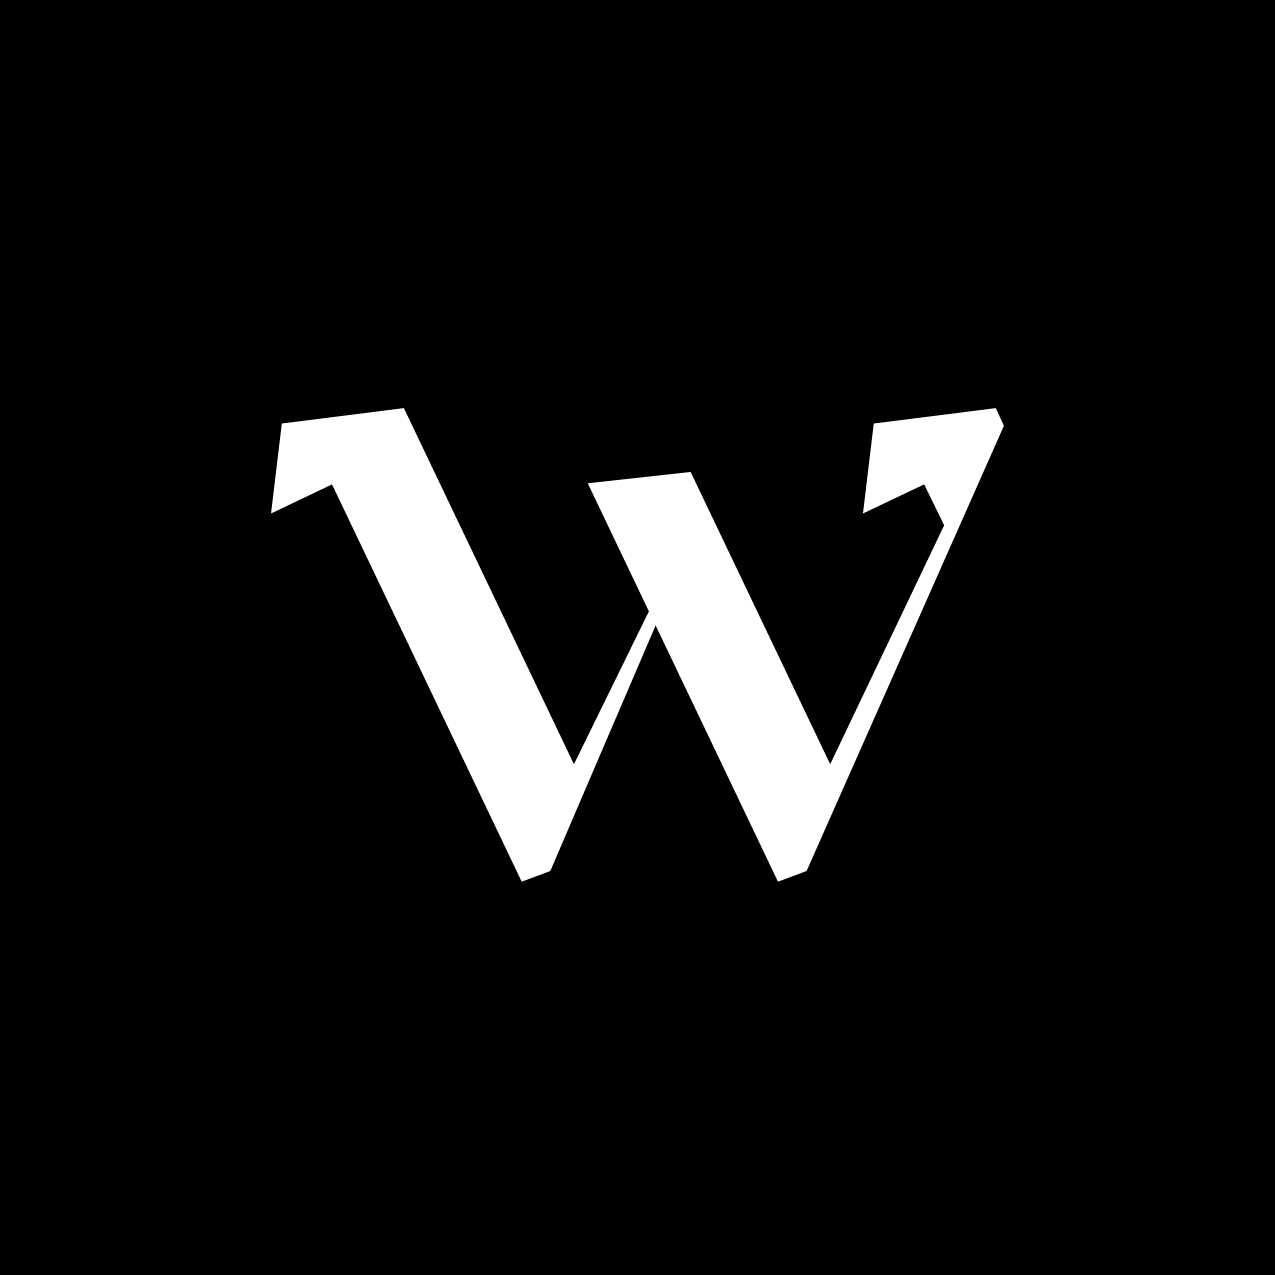 Letter W9 Design by Furia